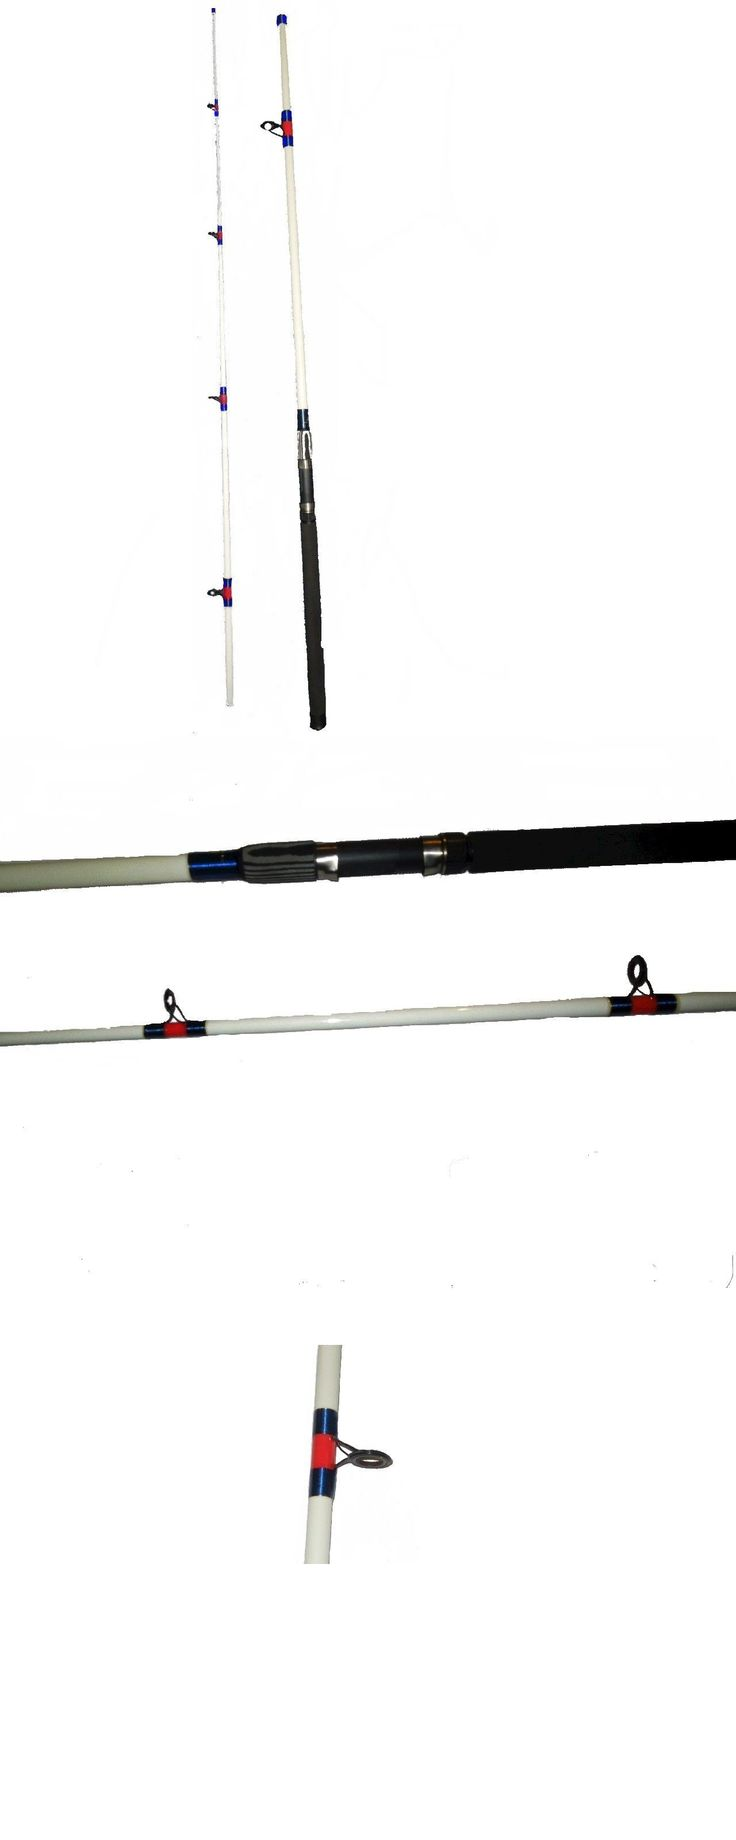 Surf Rods 56734: 10 Ft. Saltwater Surf Fishing Rod By Eat My Tackle Warehouse Sale! Make Offer! -> BUY IT NOW ONLY: $65 on eBay!